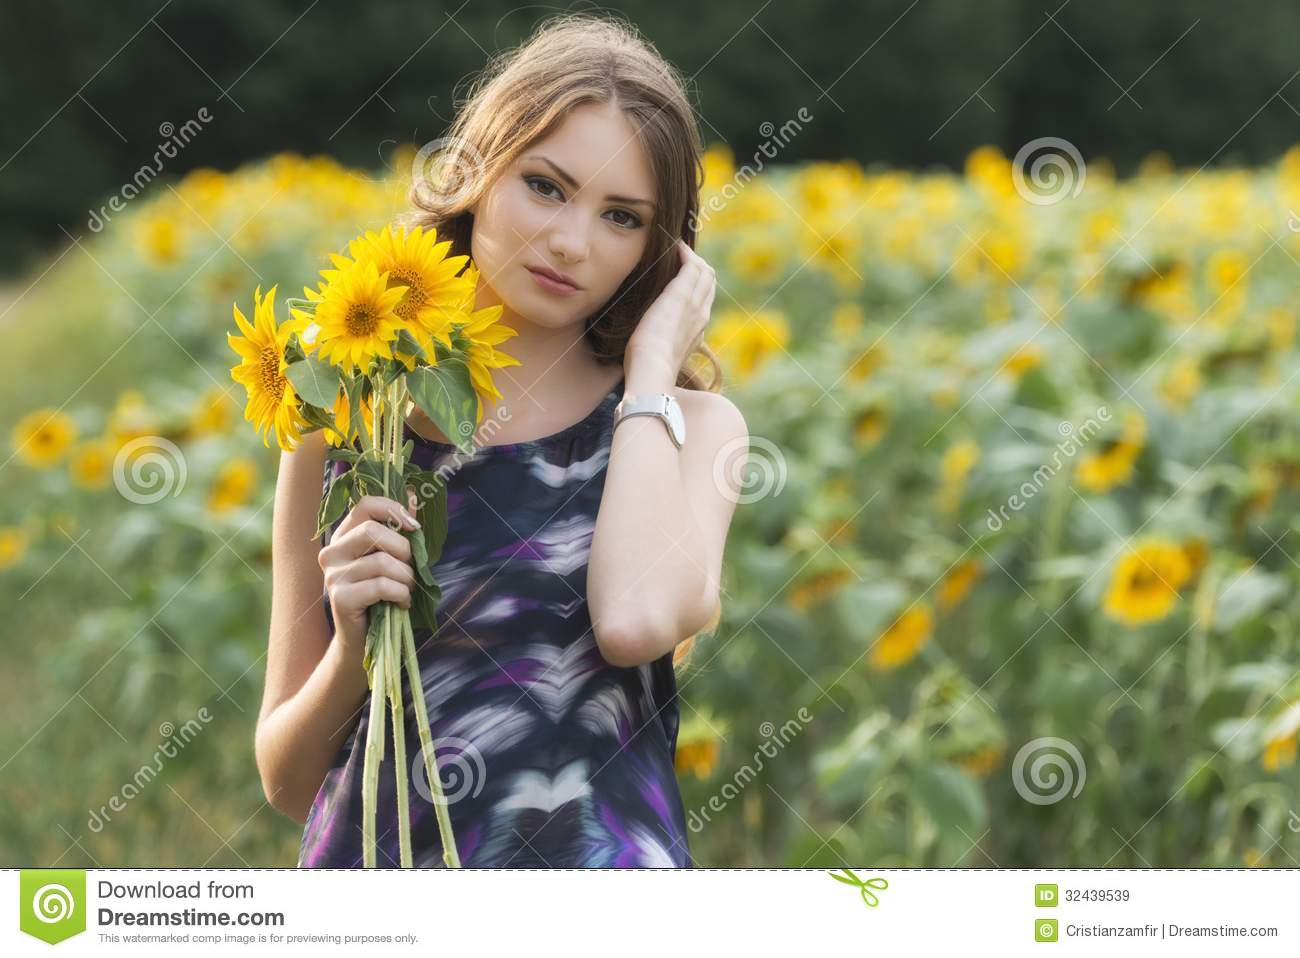 Beautiful woman on blooming sunflower field in summer